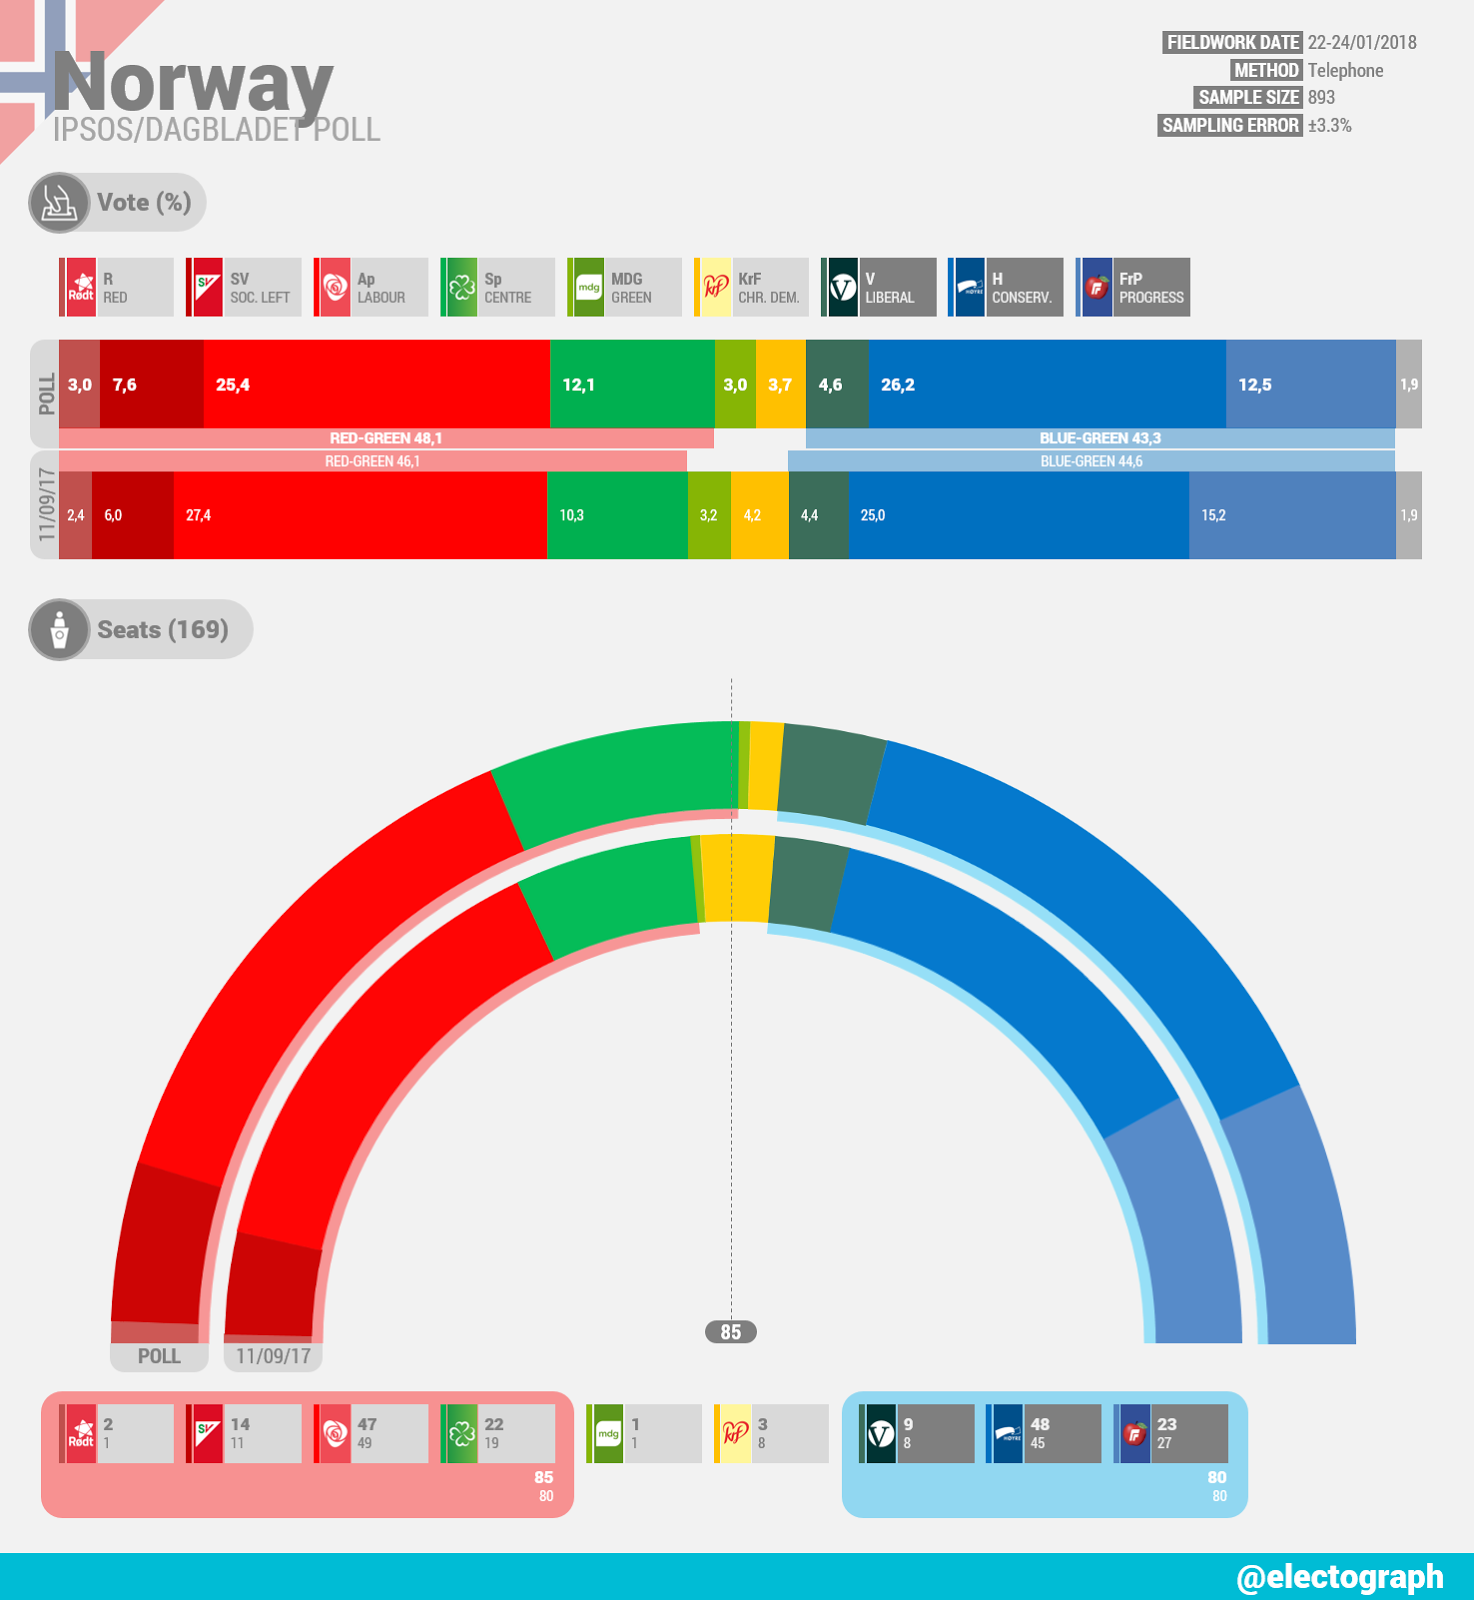 NORWAY Ipsos poll chart for Dagbladet, January 2018